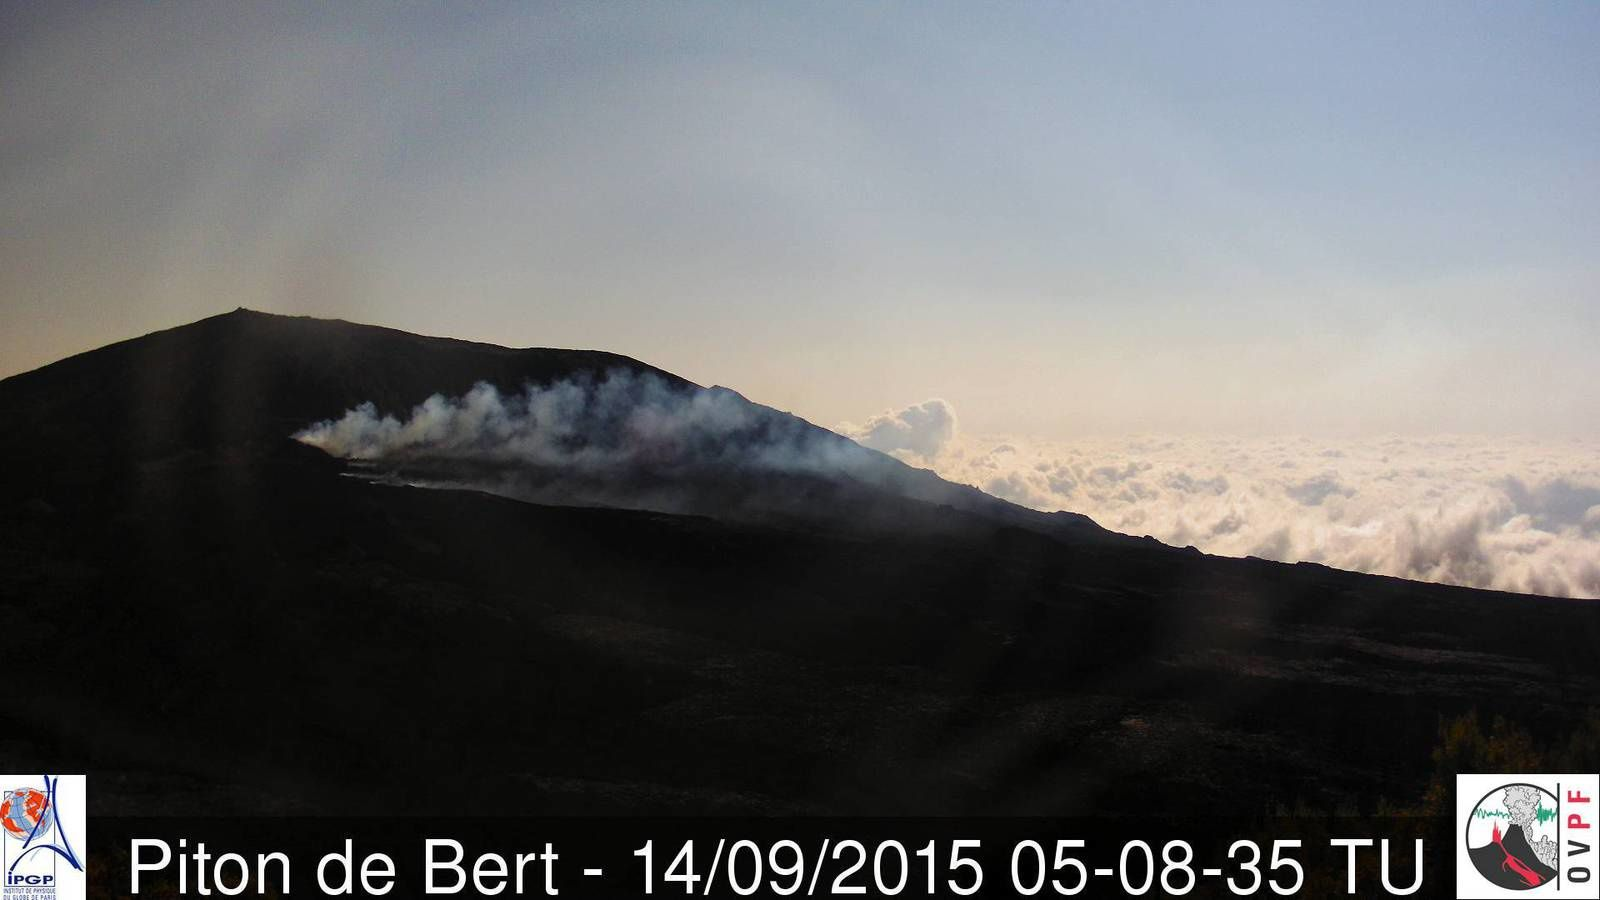 Piton de la Fournaise - pursuit of this eruption 09.14.2015 / 5:08 GMT - Piton Bert camera / OVPF